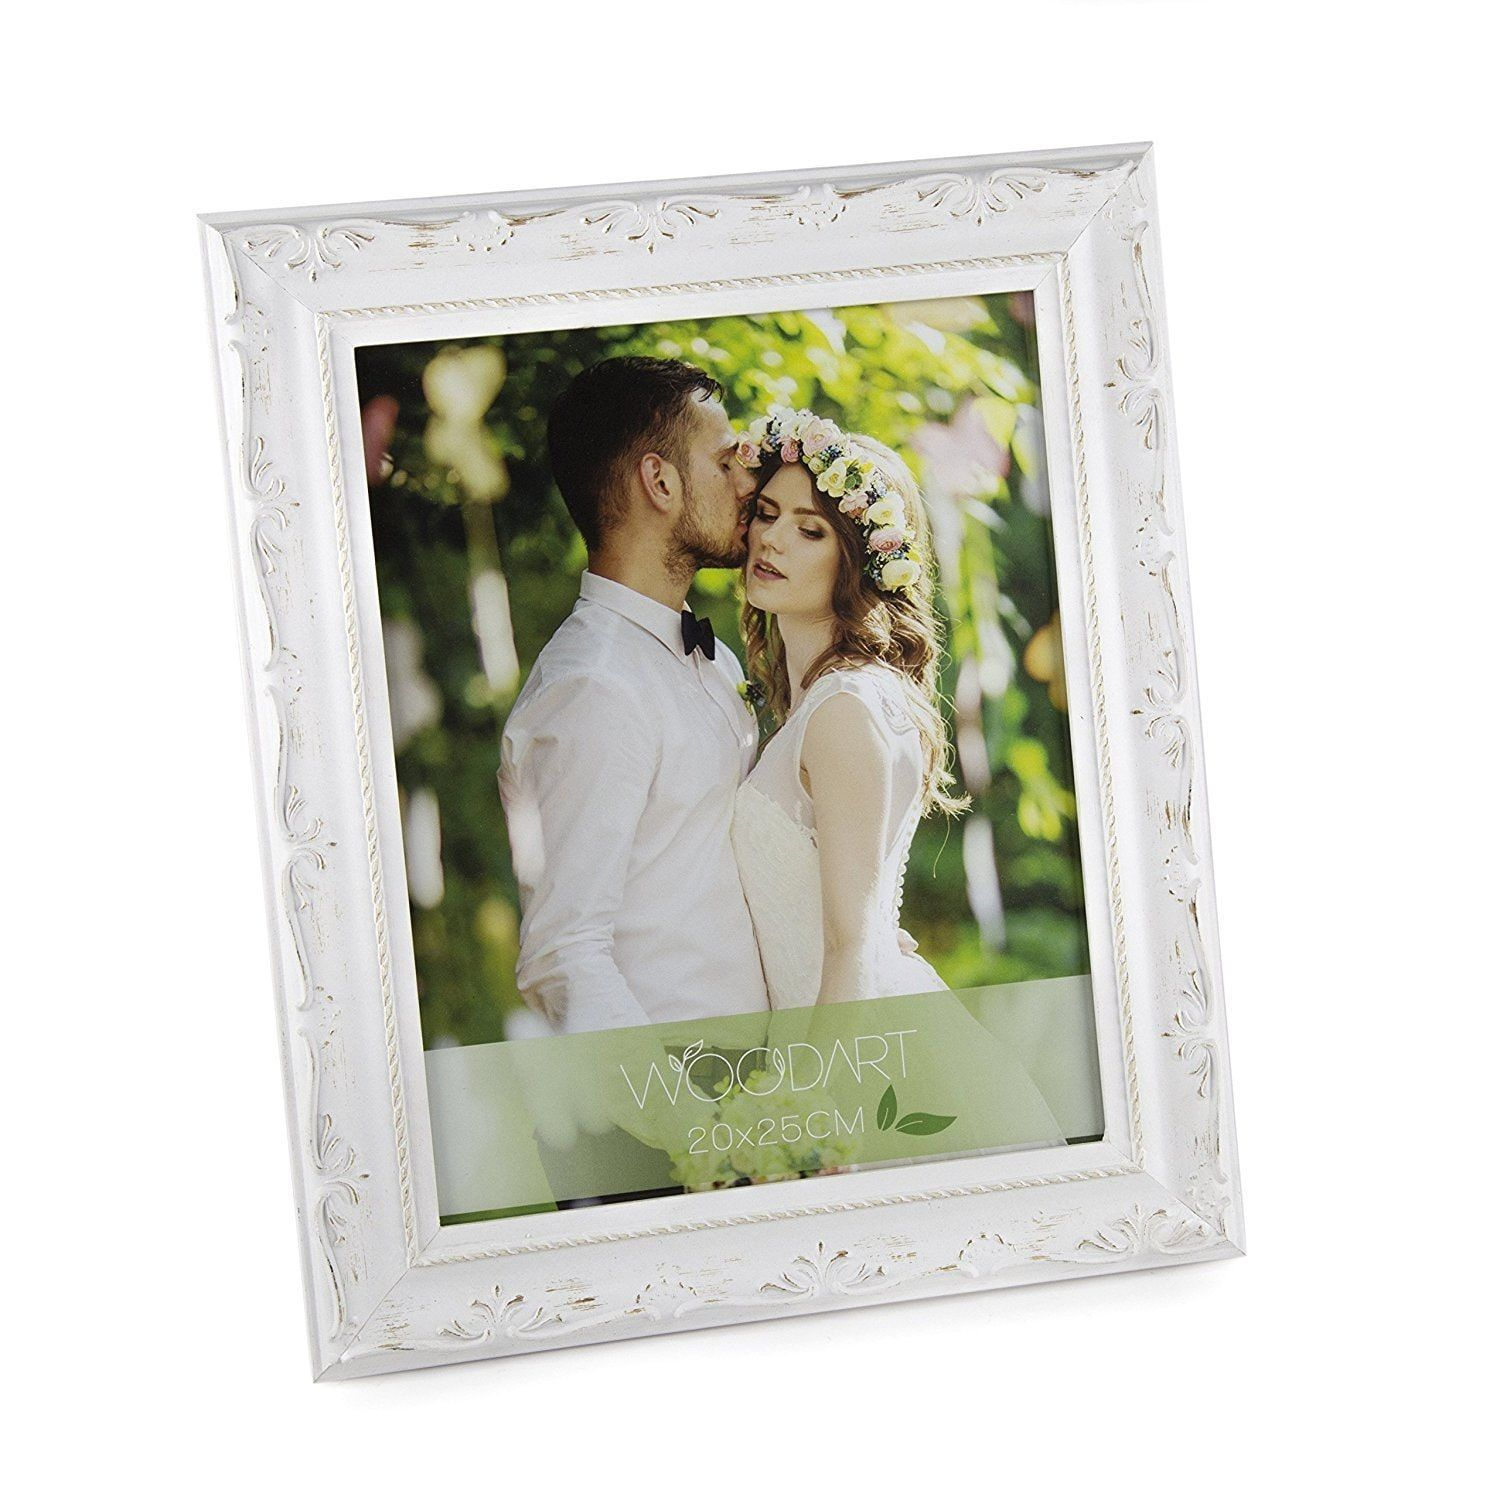 Wolff US Woodart Ornate Wood Picture Frame (Distressed White, 8x10 ...